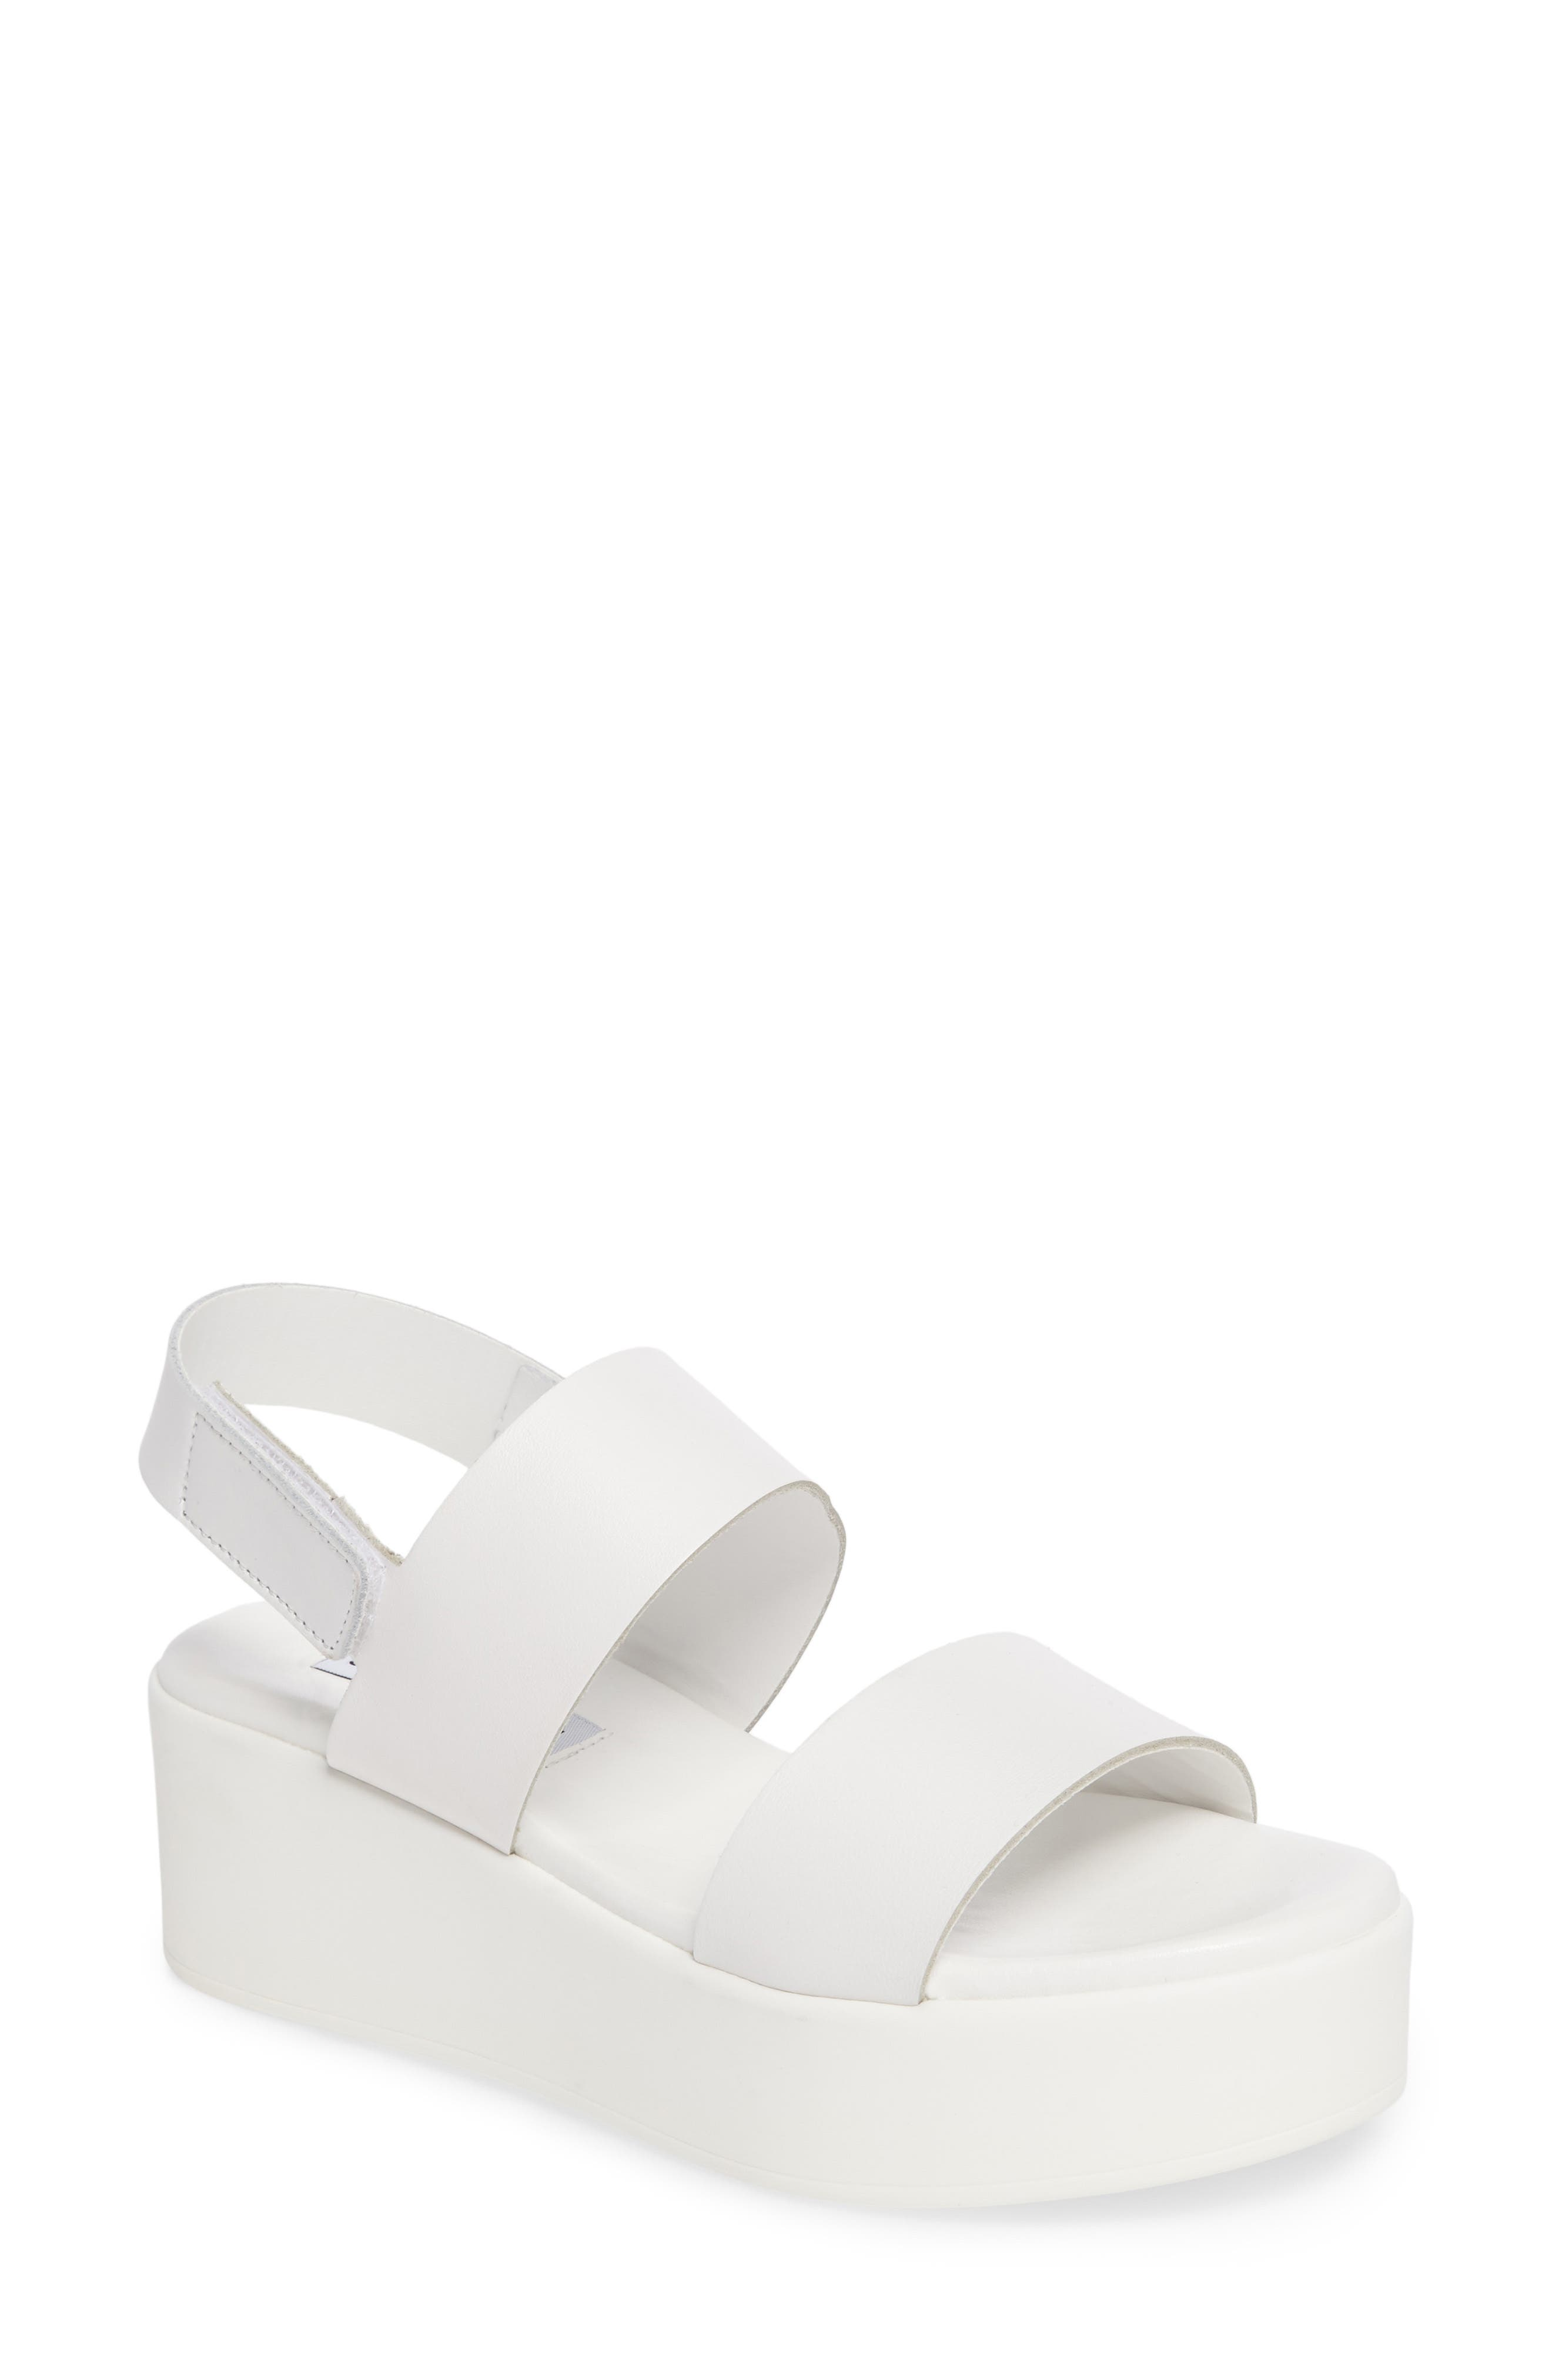 Alternate Image 1 Selected - Steve Madden Rachel Platform Wedge Sandal (Women)